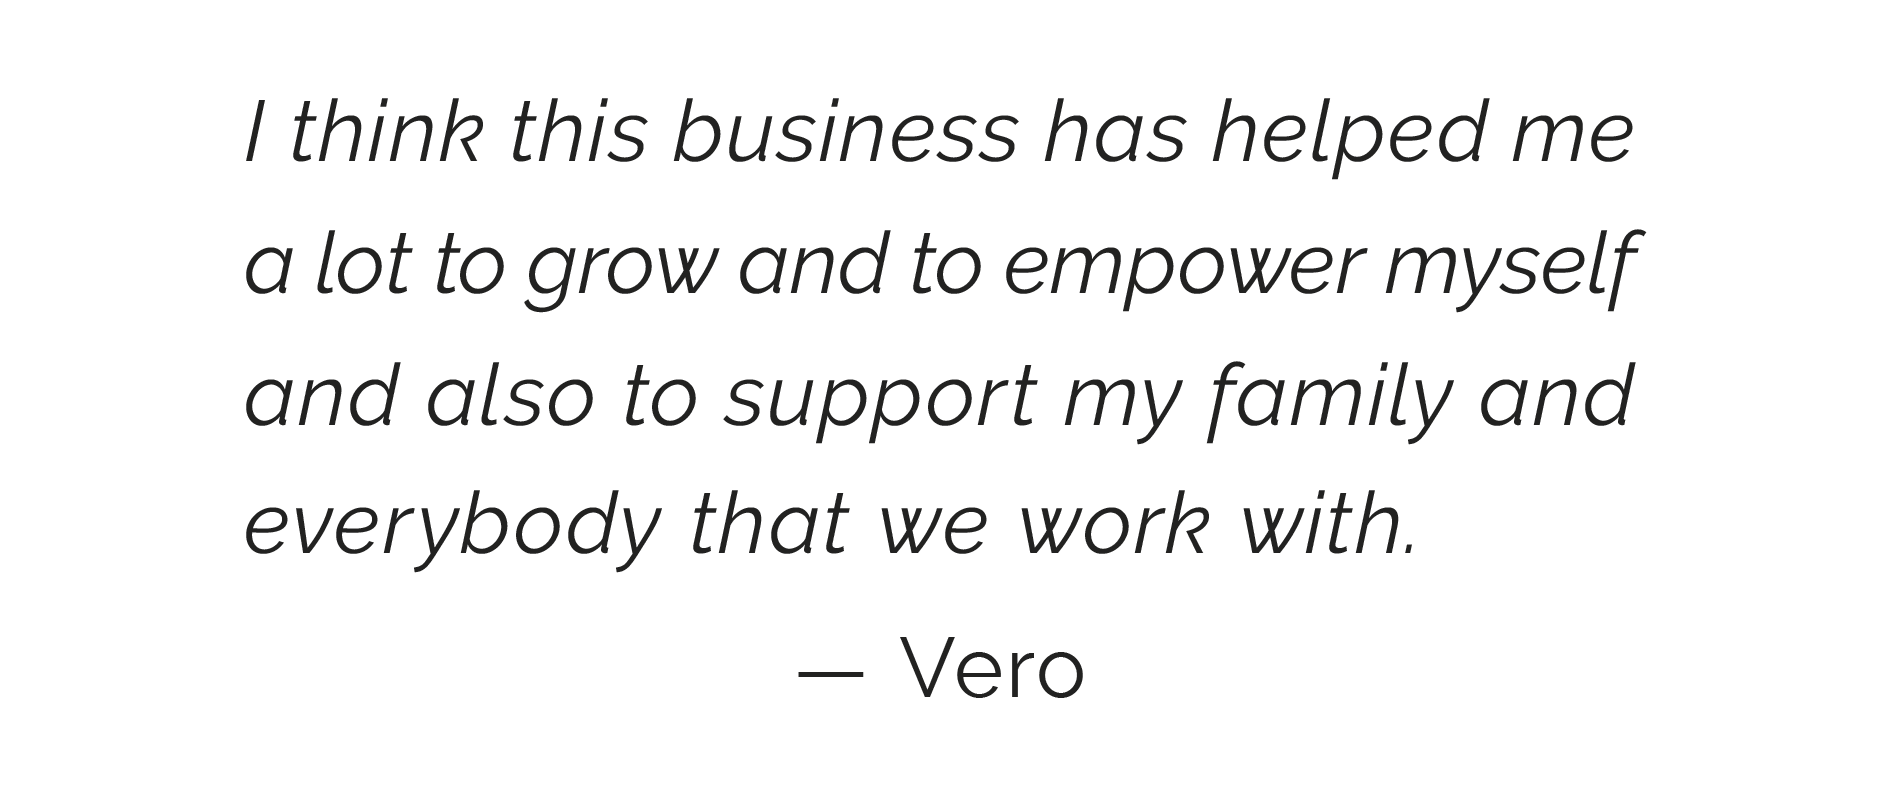 I think this business has helped me a lot to grow and to empower myself and also to support my family and everybody that we work with. — Vero